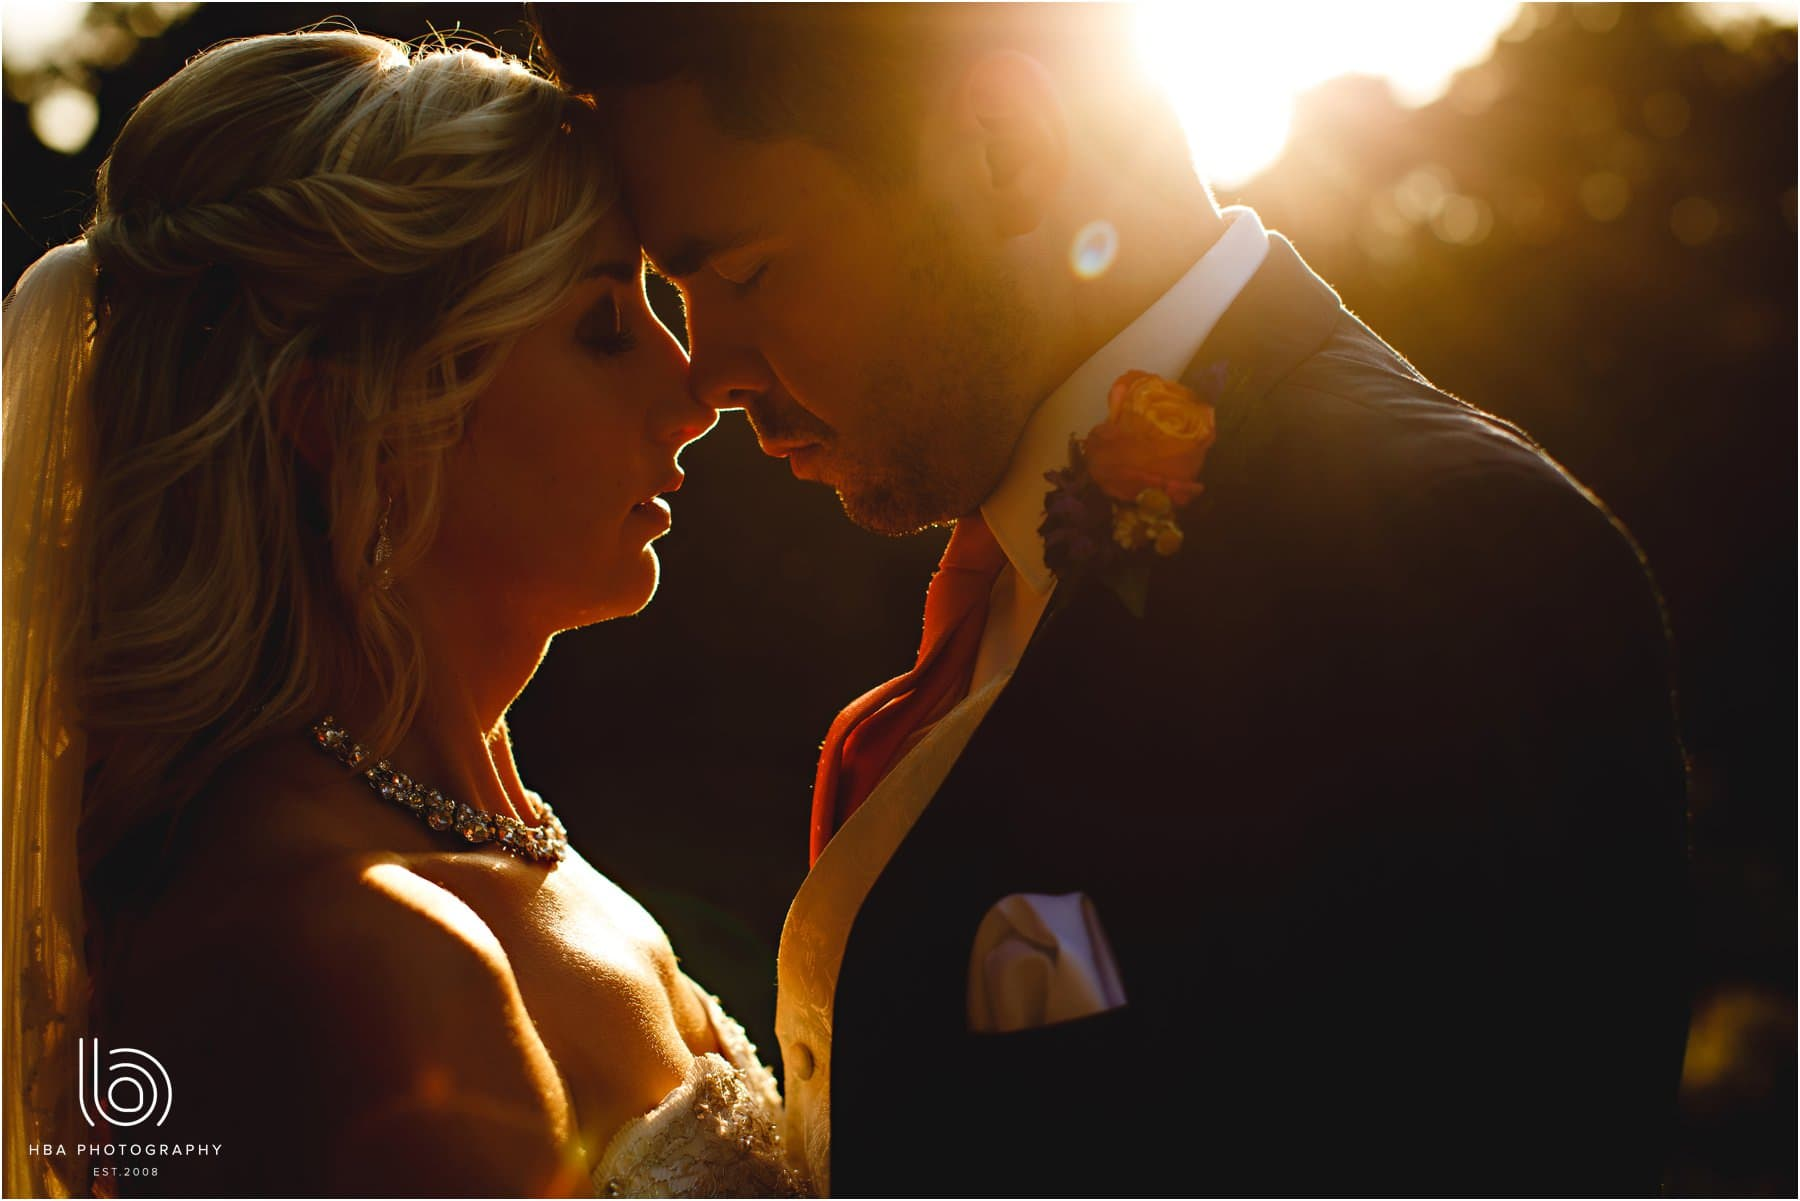 the bride and groom in golden hour